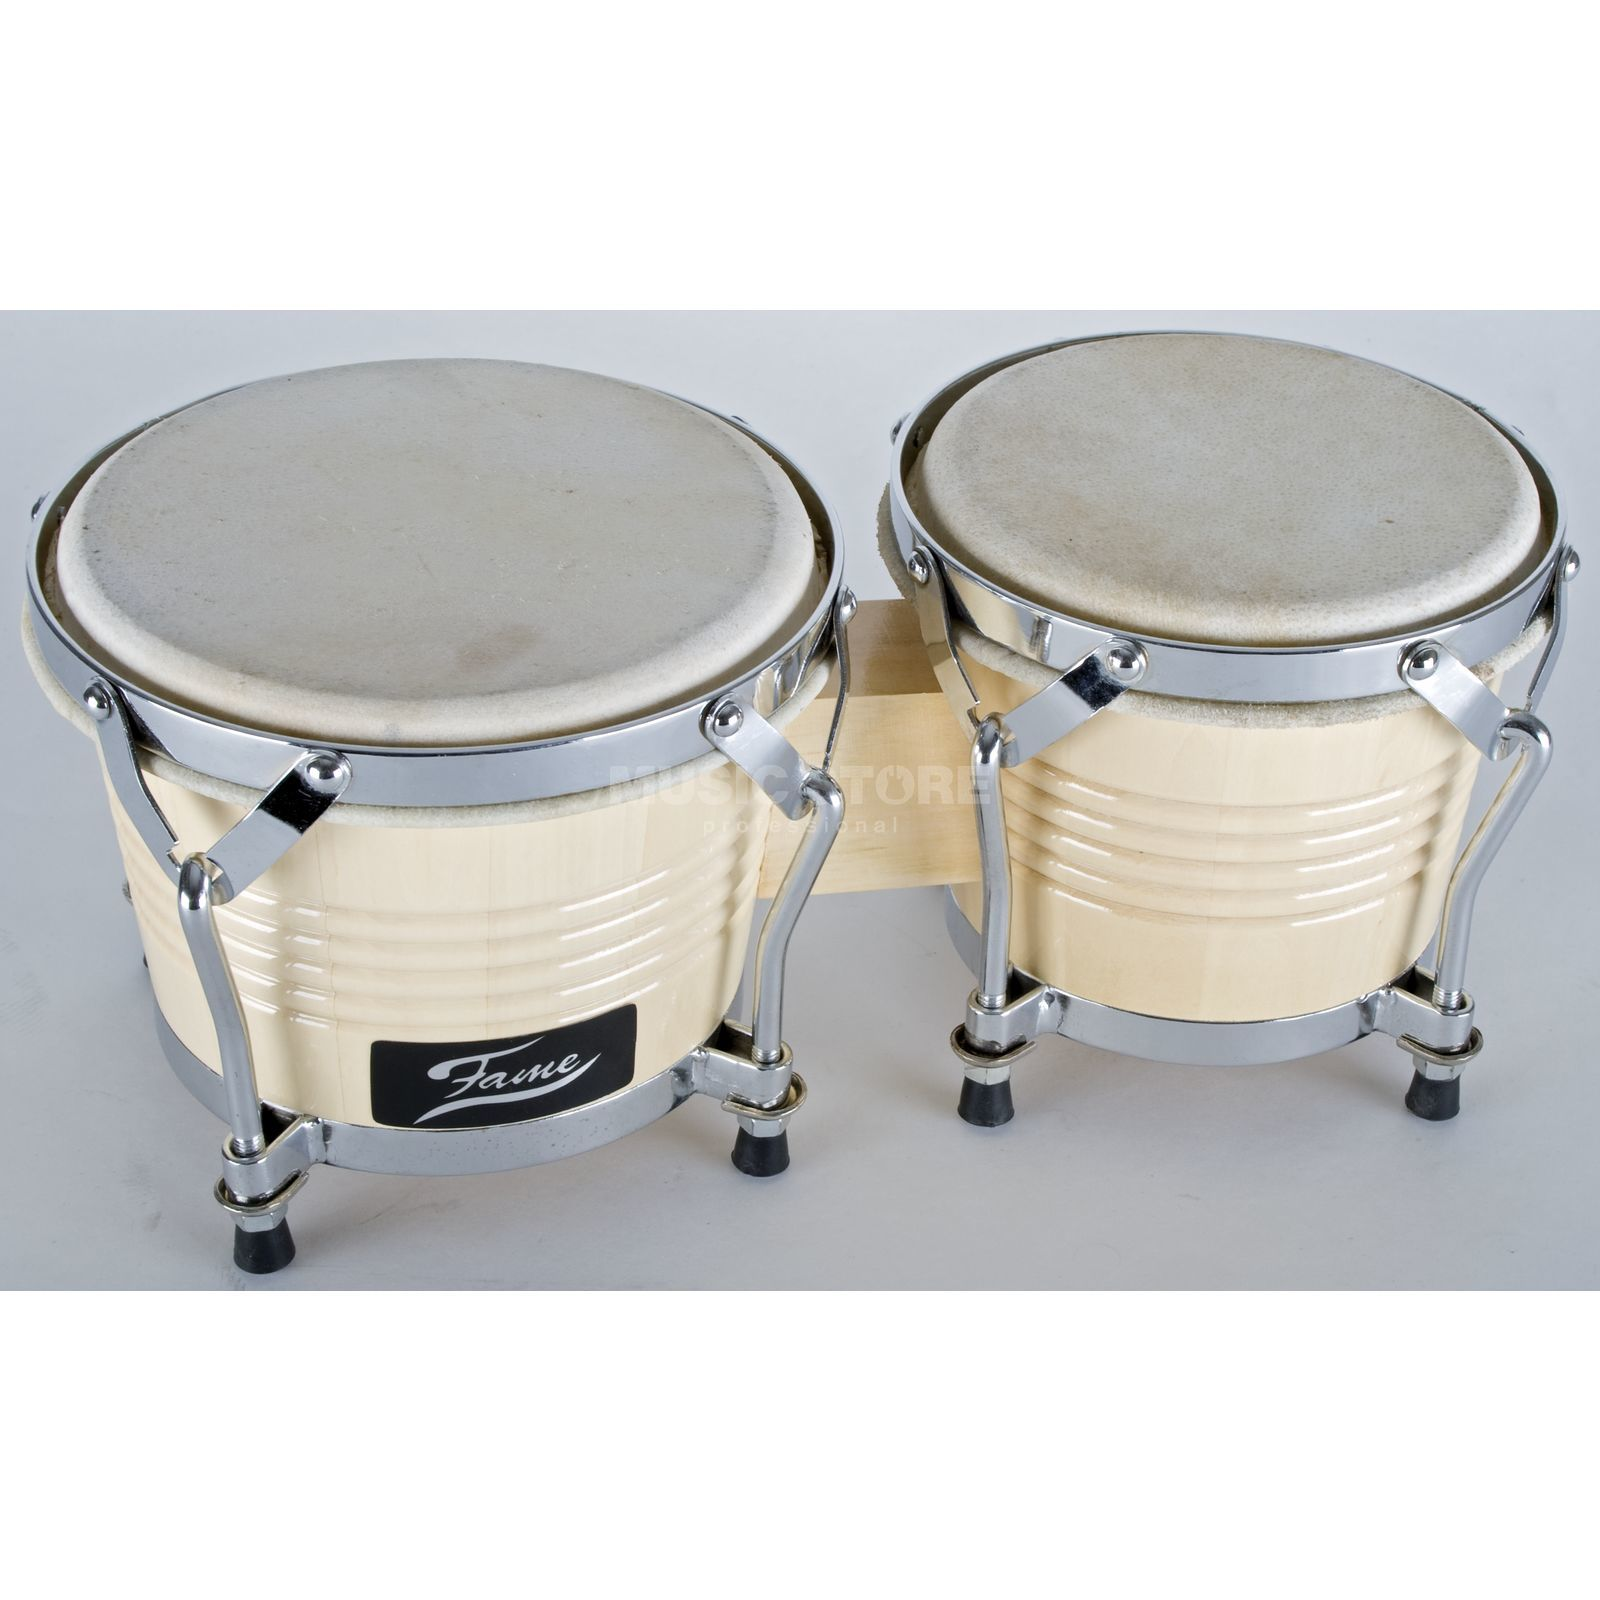 "Fame Bongo Beginner Set 6""+7"", Natural, Chrom Hardware Produktbillede"